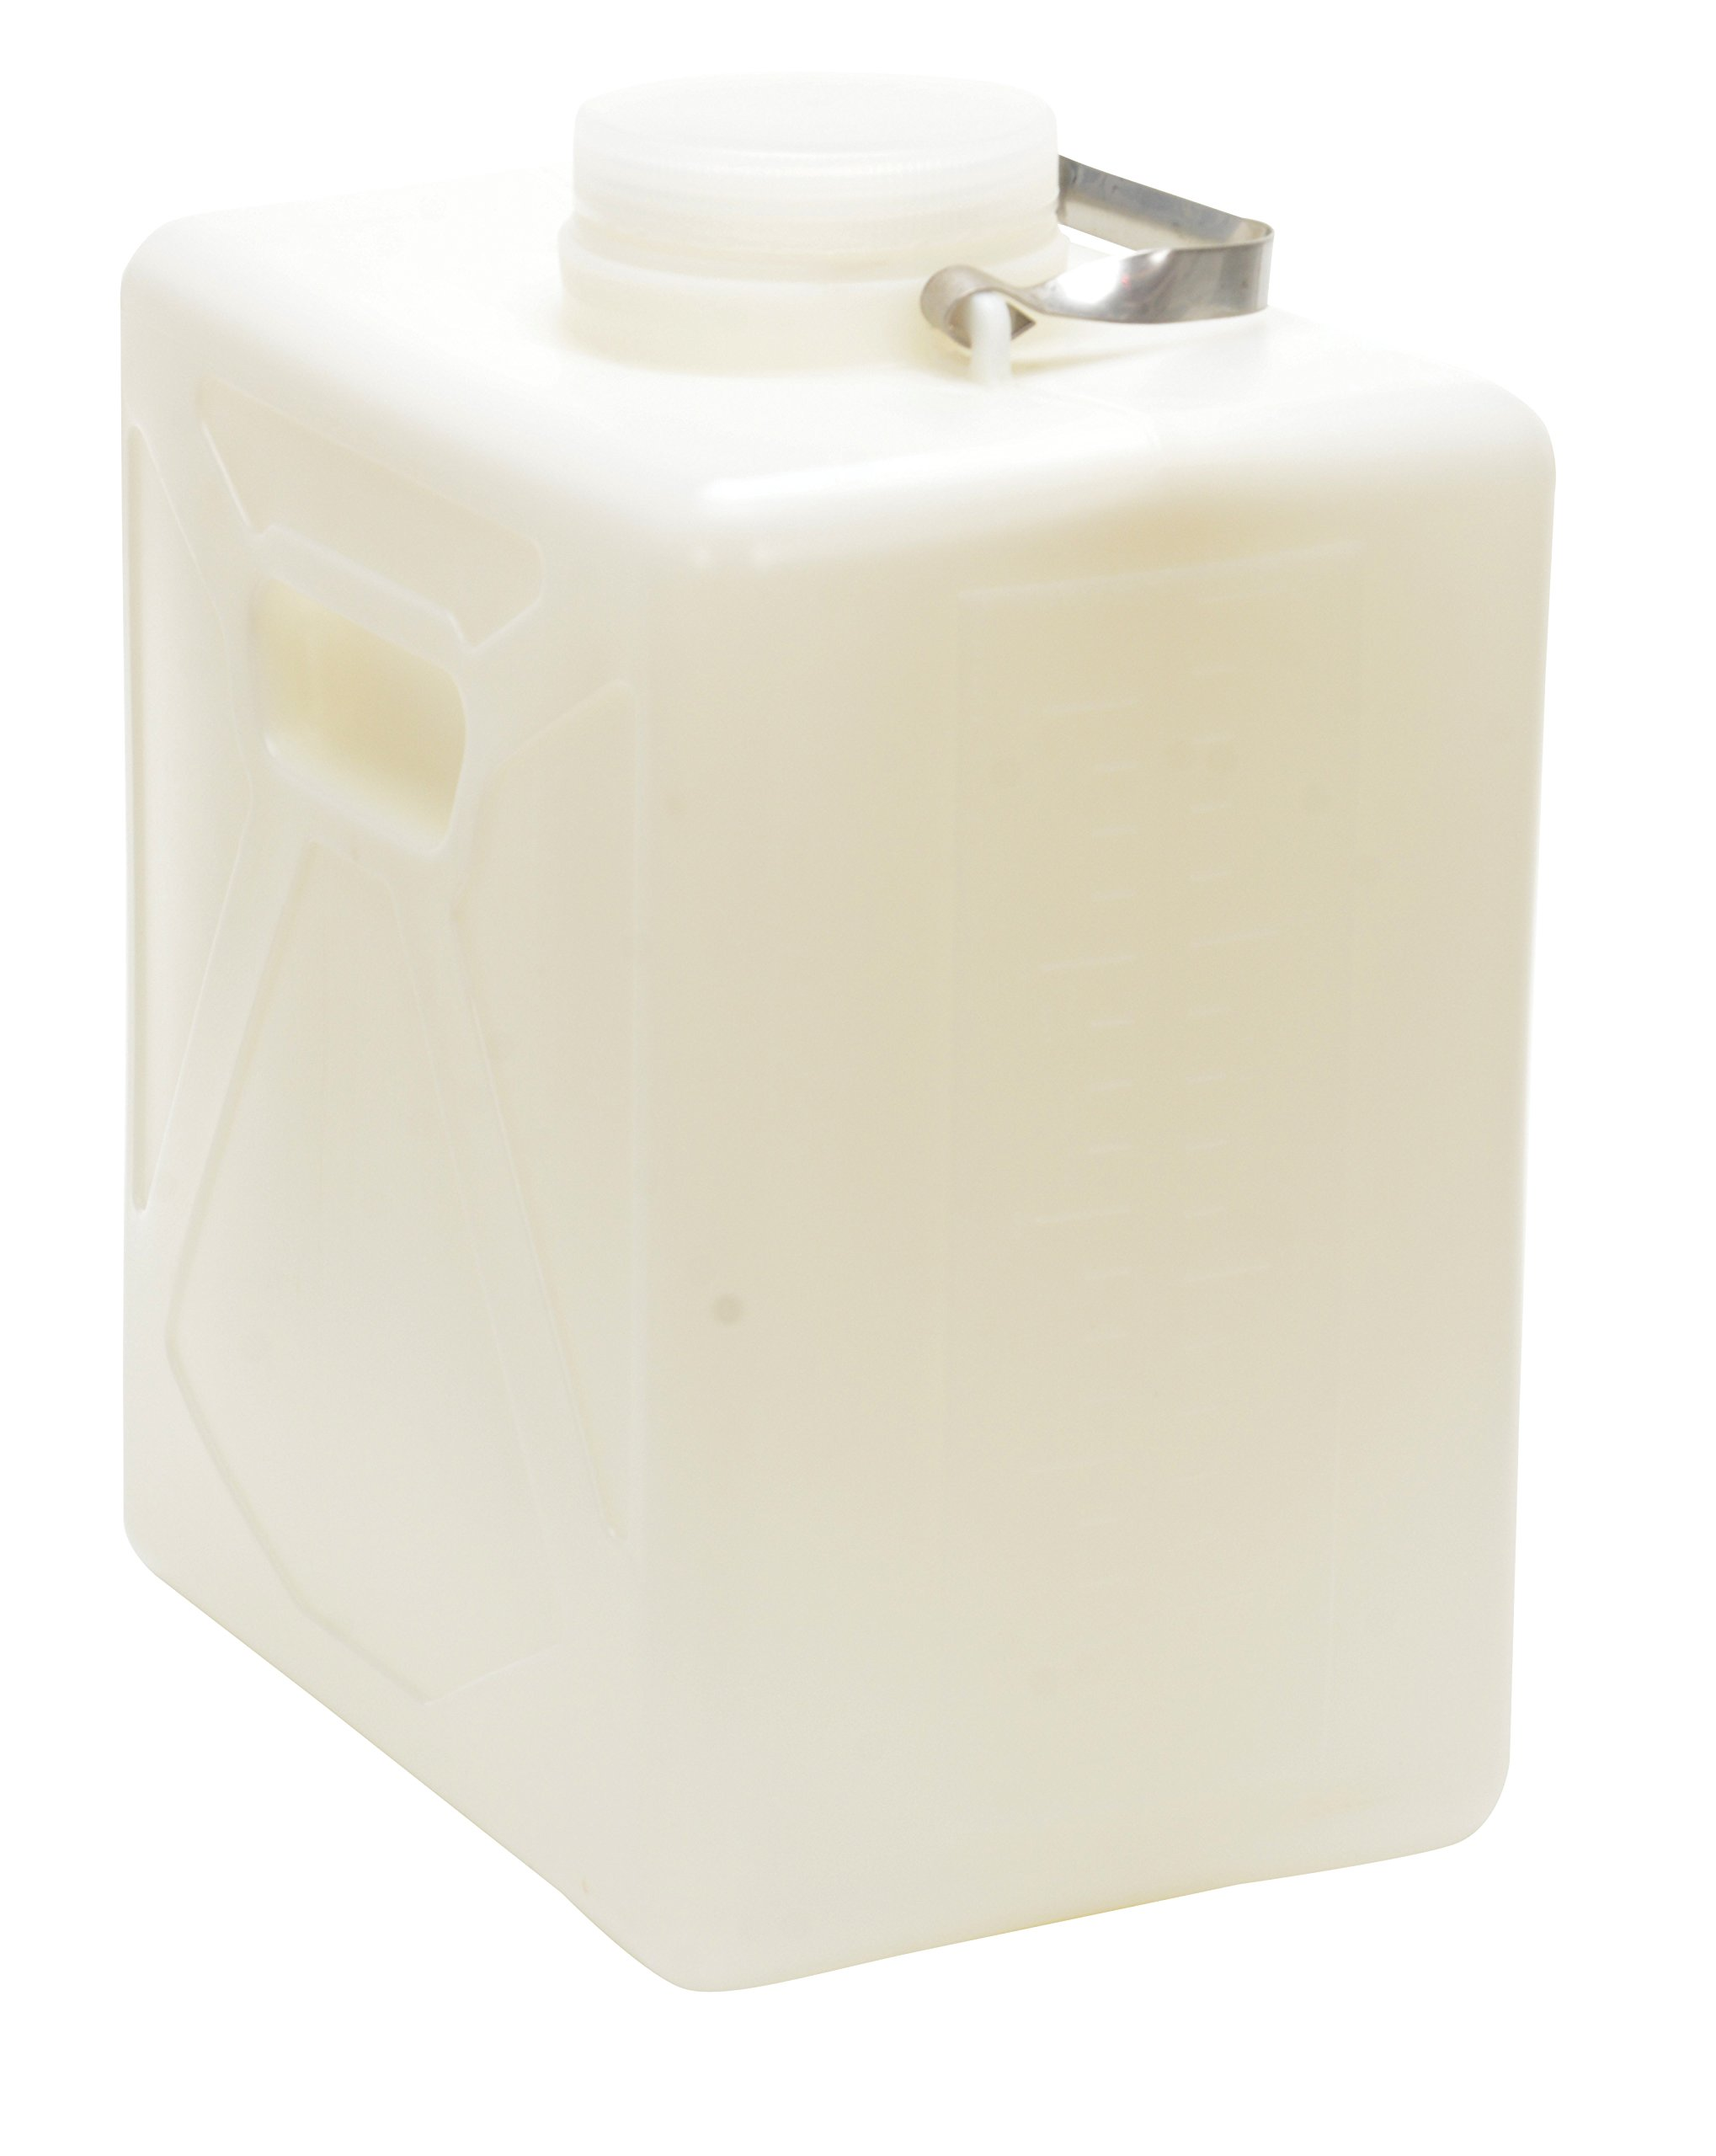 Vestil CARB-5-SSH Wide Mouth High Density Polyethylene (HDPE) Rectangular Carboy with Stainless Steel Handle, 5 Gallon Capacity, Natural